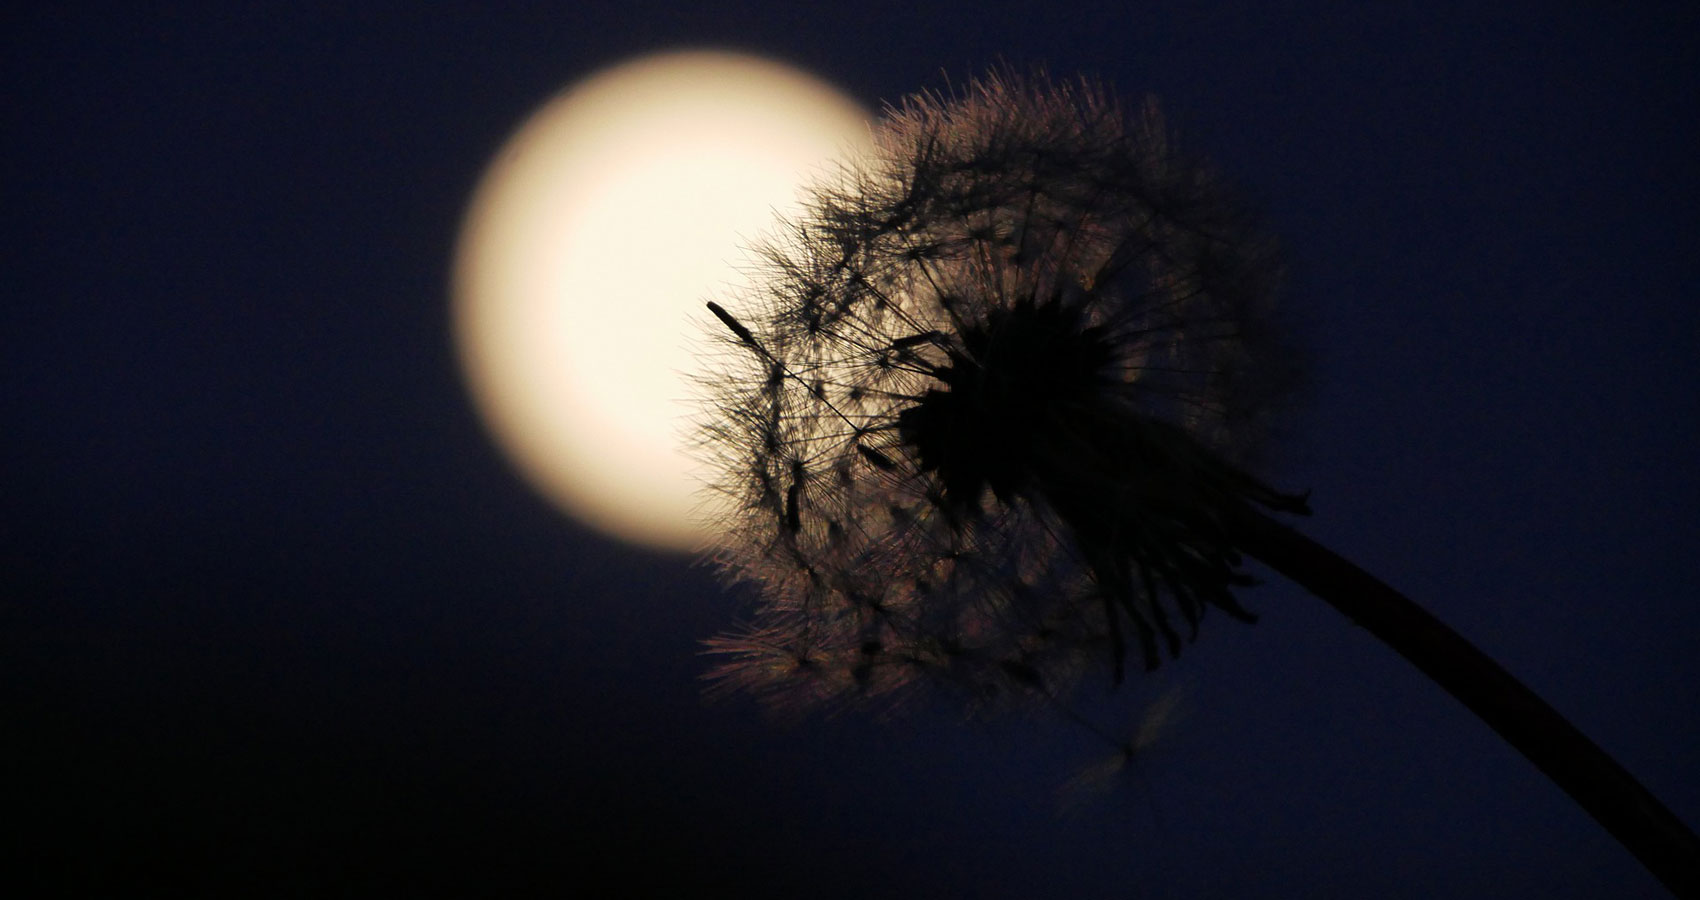 The Dandelions, dark poetry by Iluvia Triste at Spillwords.com